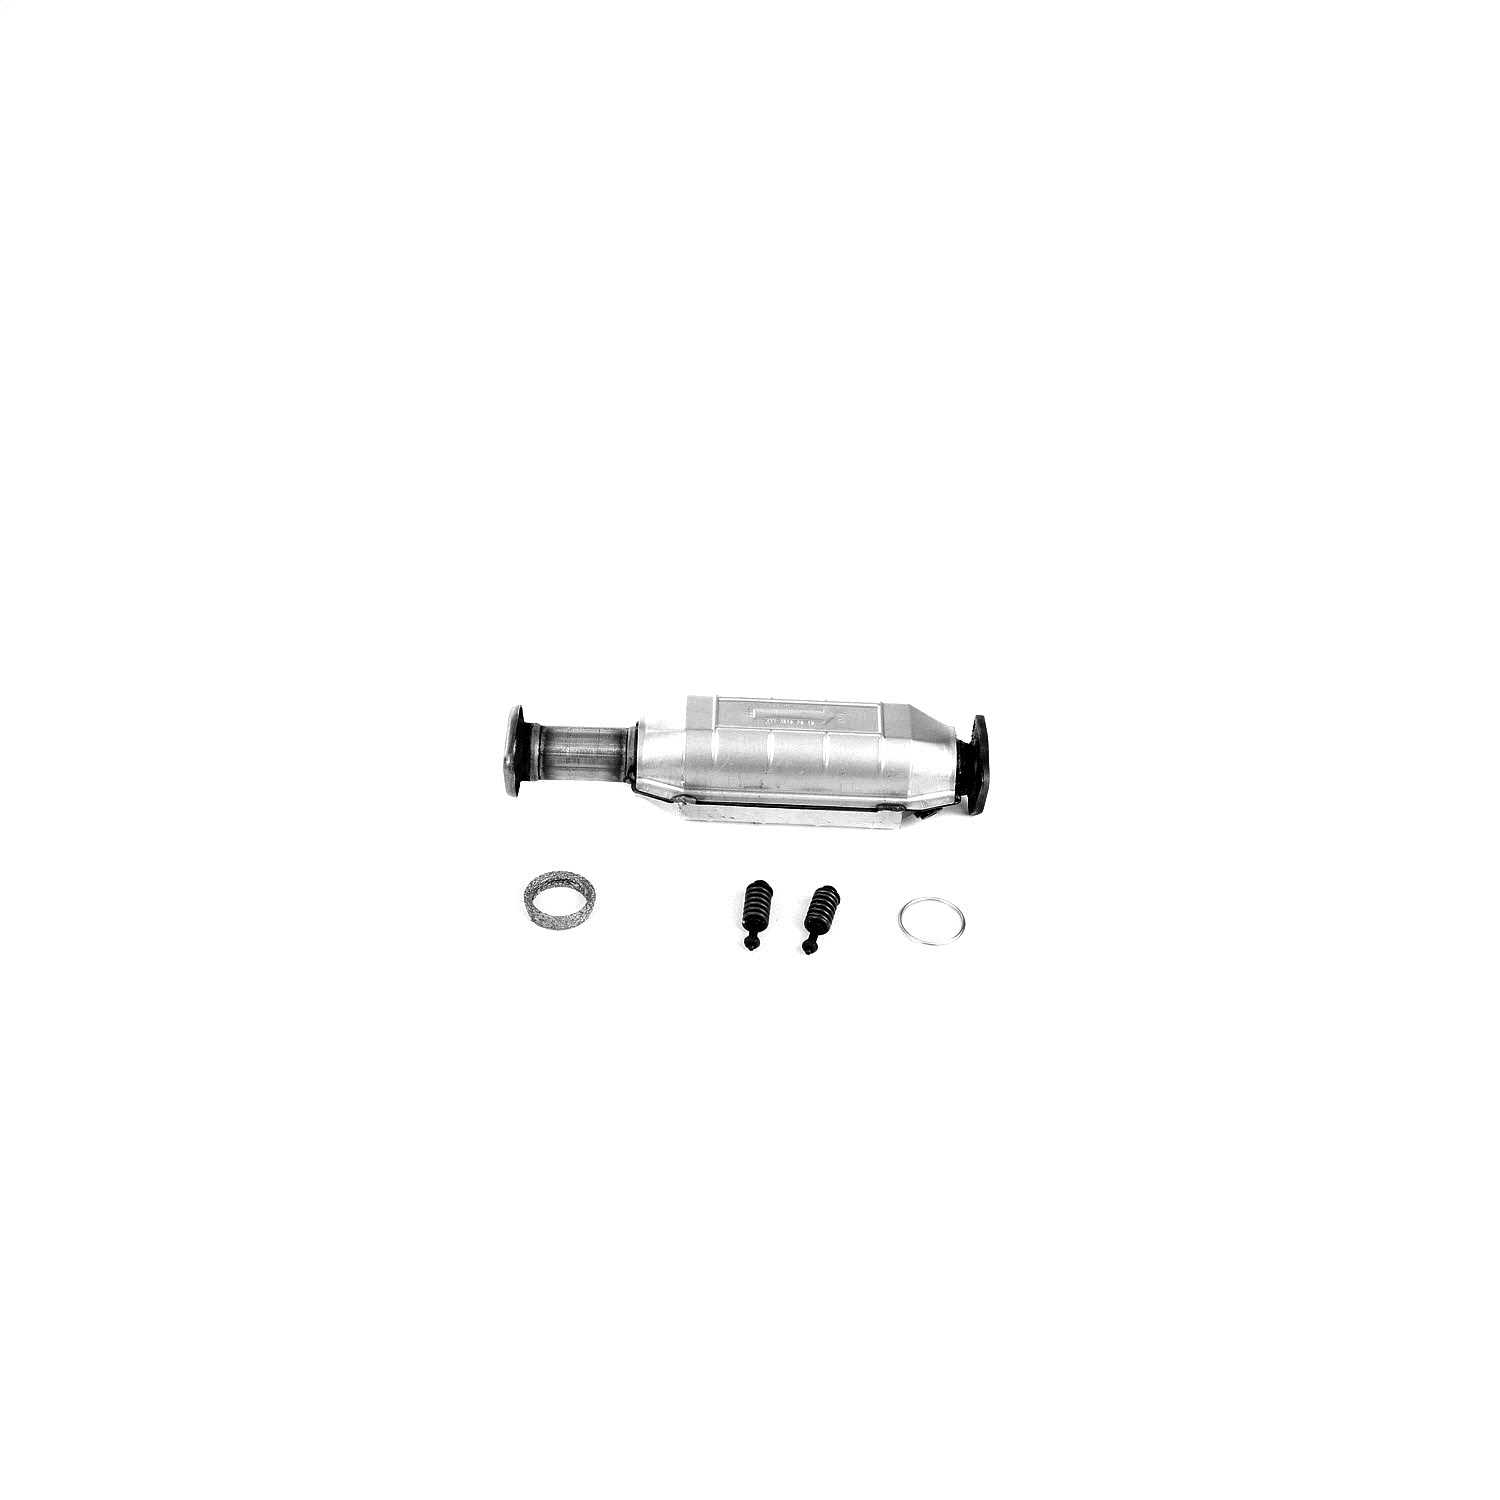 2064249 Flowmaster 49 State Catalytic Converters Direct Fit Catalytic Converter